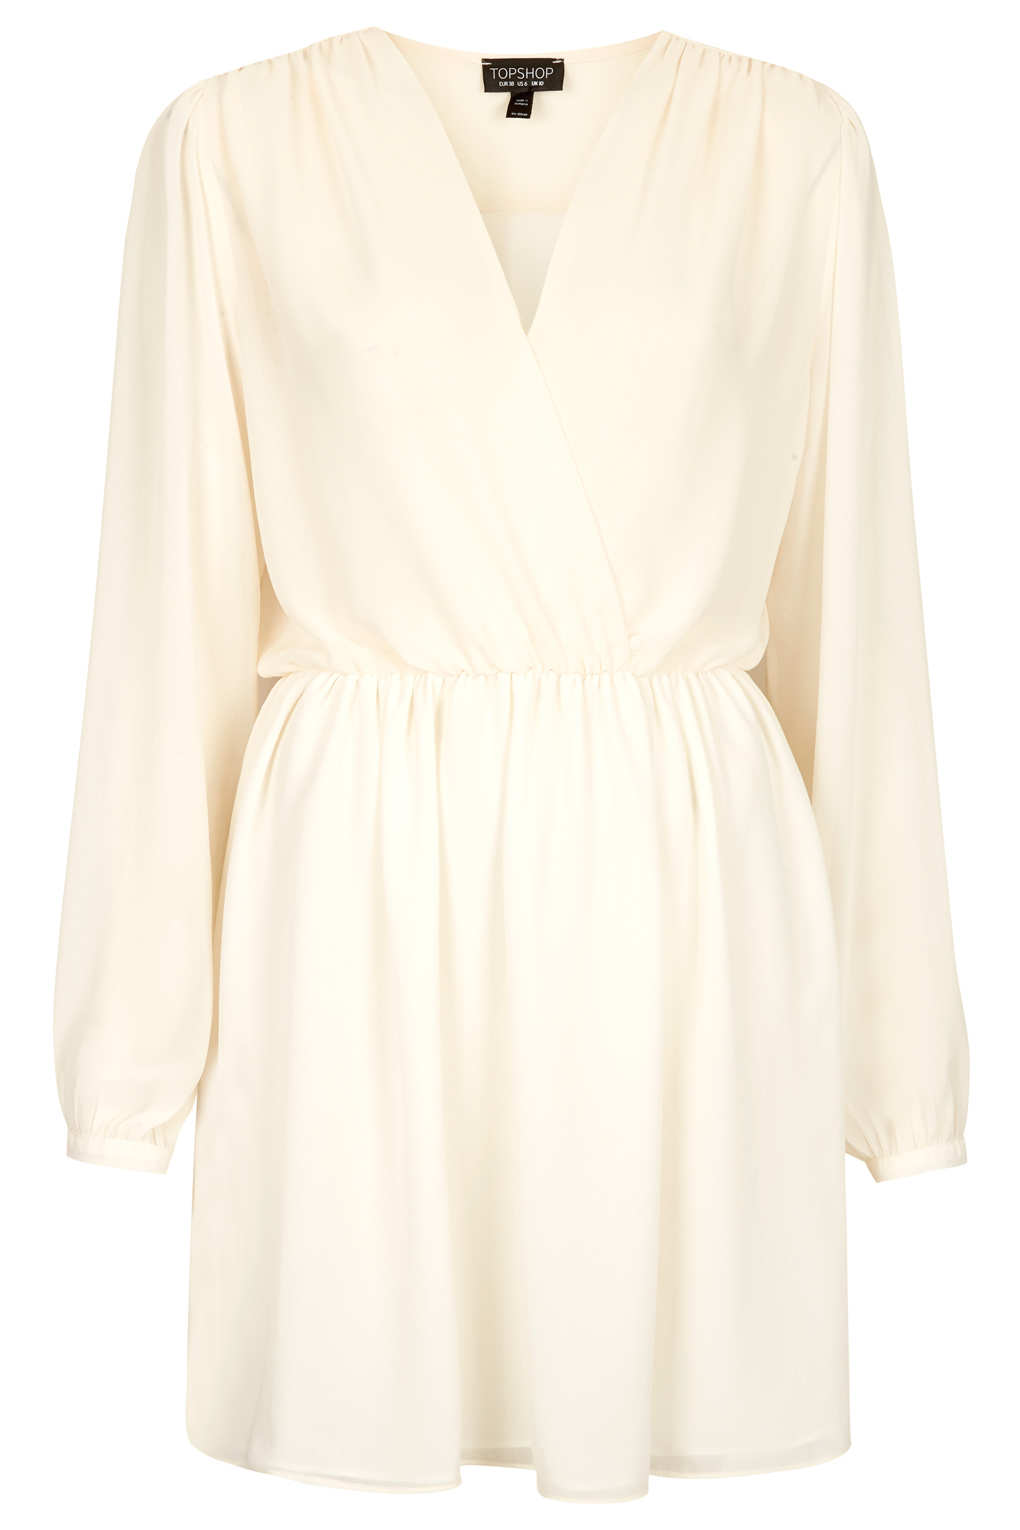 Topshop Chiffon Wrap Dress in Natural | Lyst